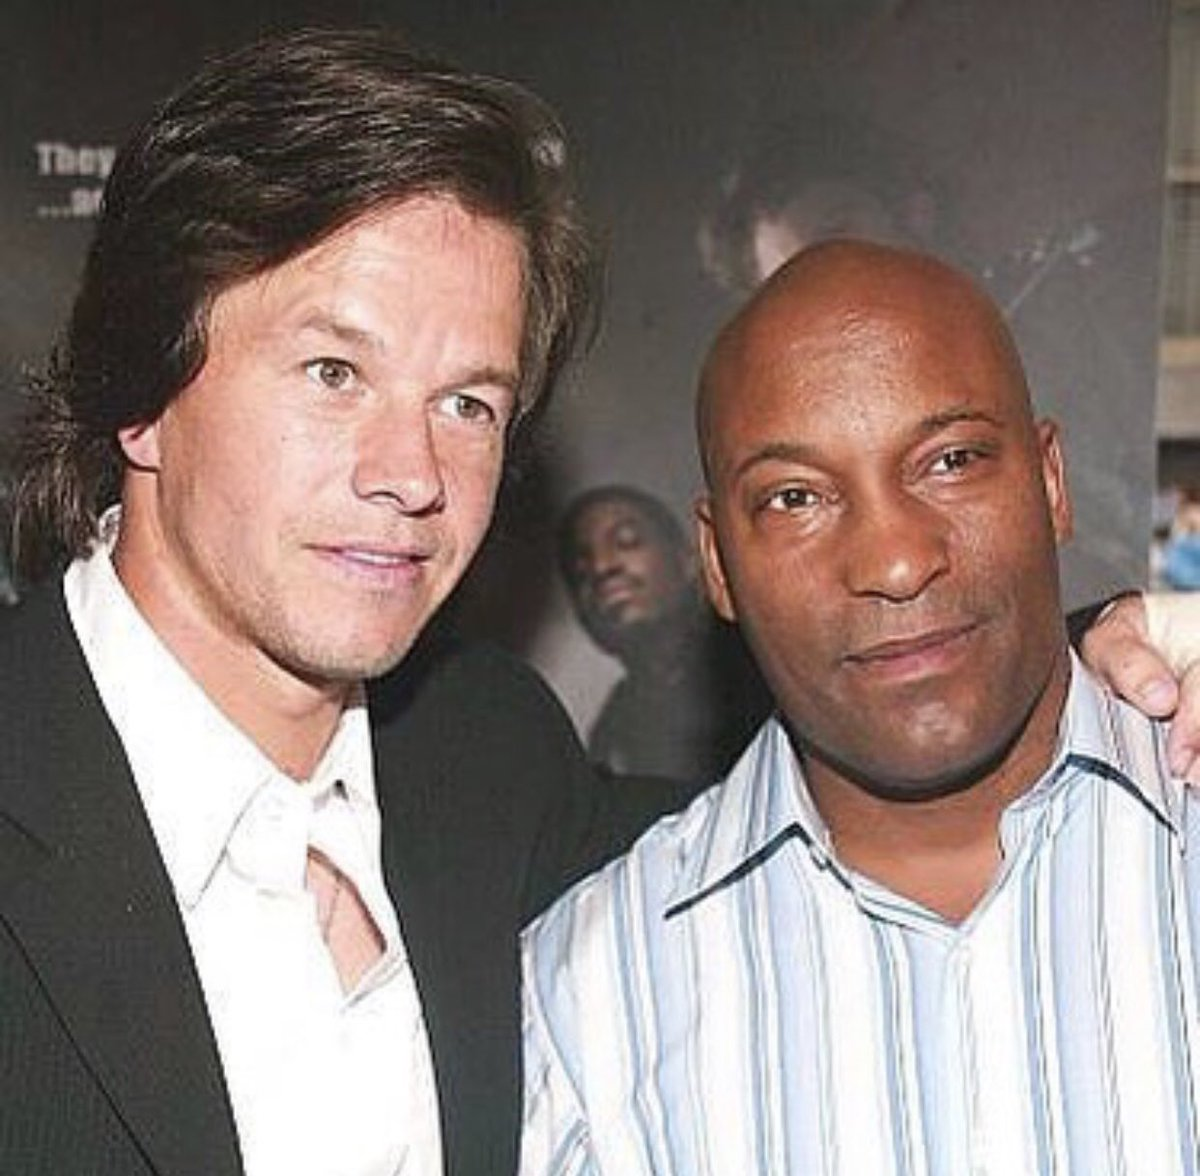 RIP to my dear friend and brother #JohnSingleton. ???????? https://t.co/nktdwJ5RzO